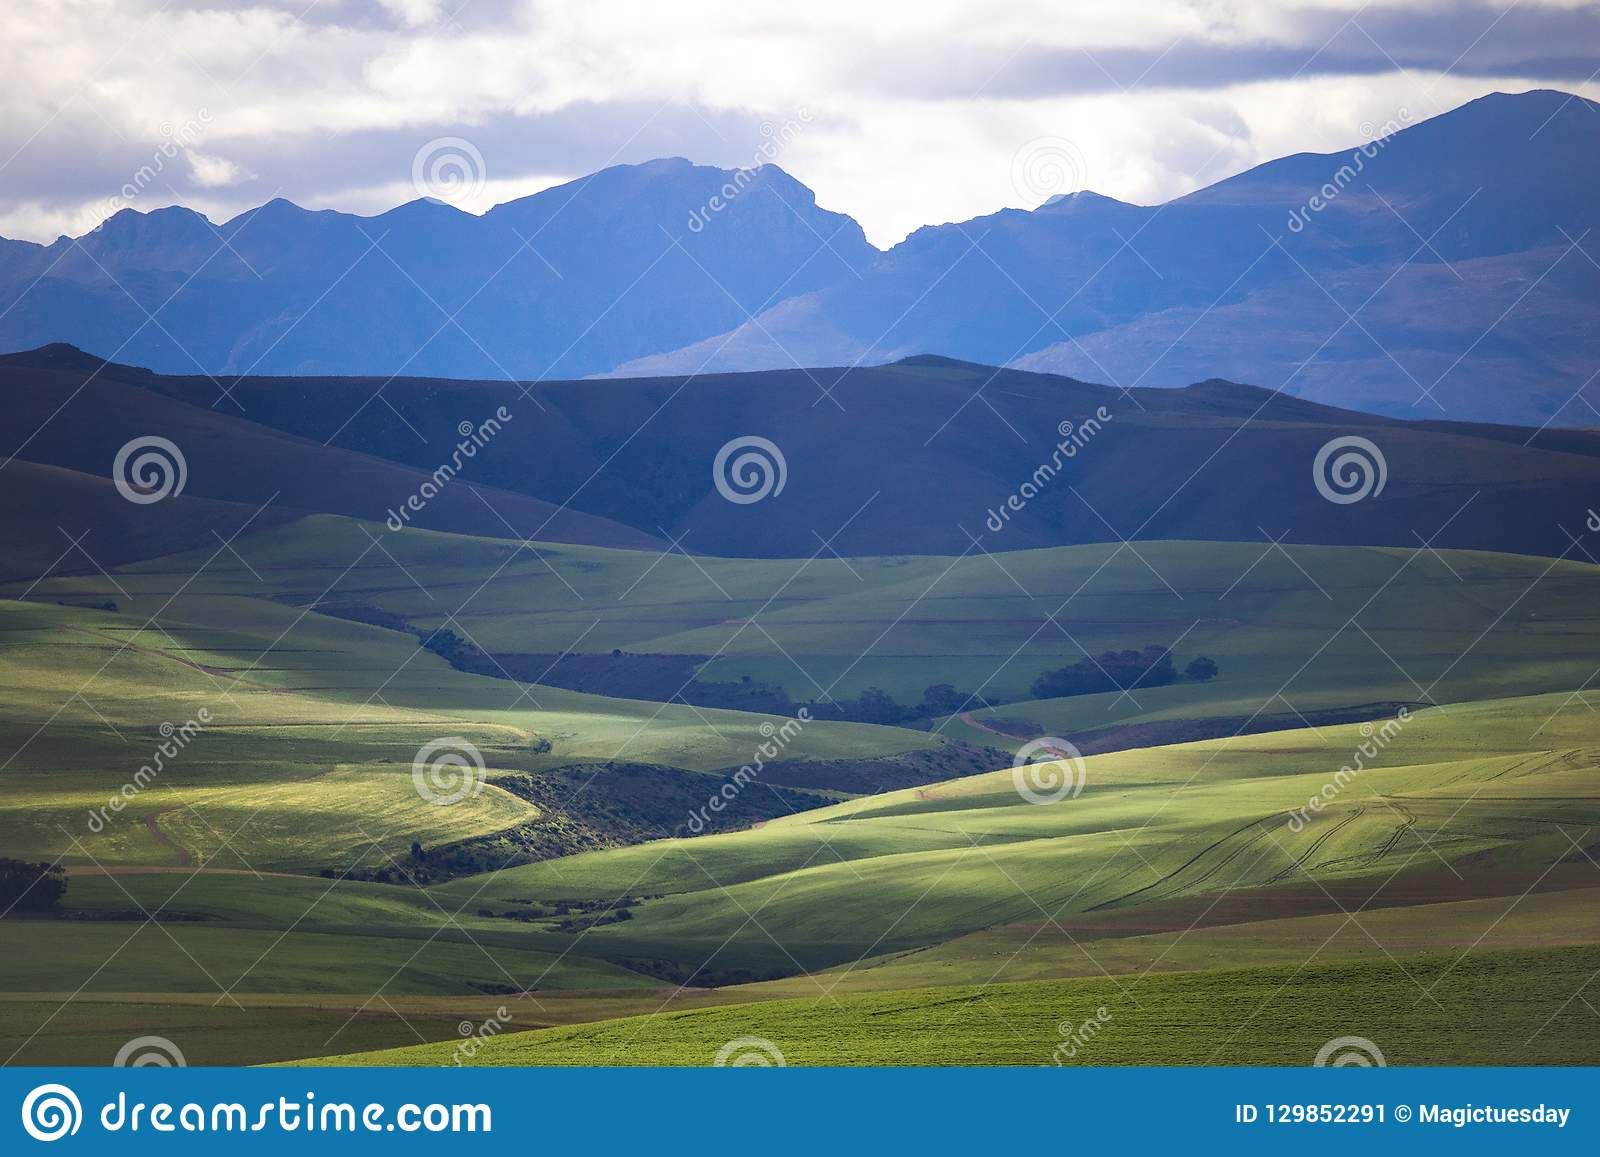 Rolling green agricultural fields with mountains in the background - Caledon, Western Cape - South Africa.